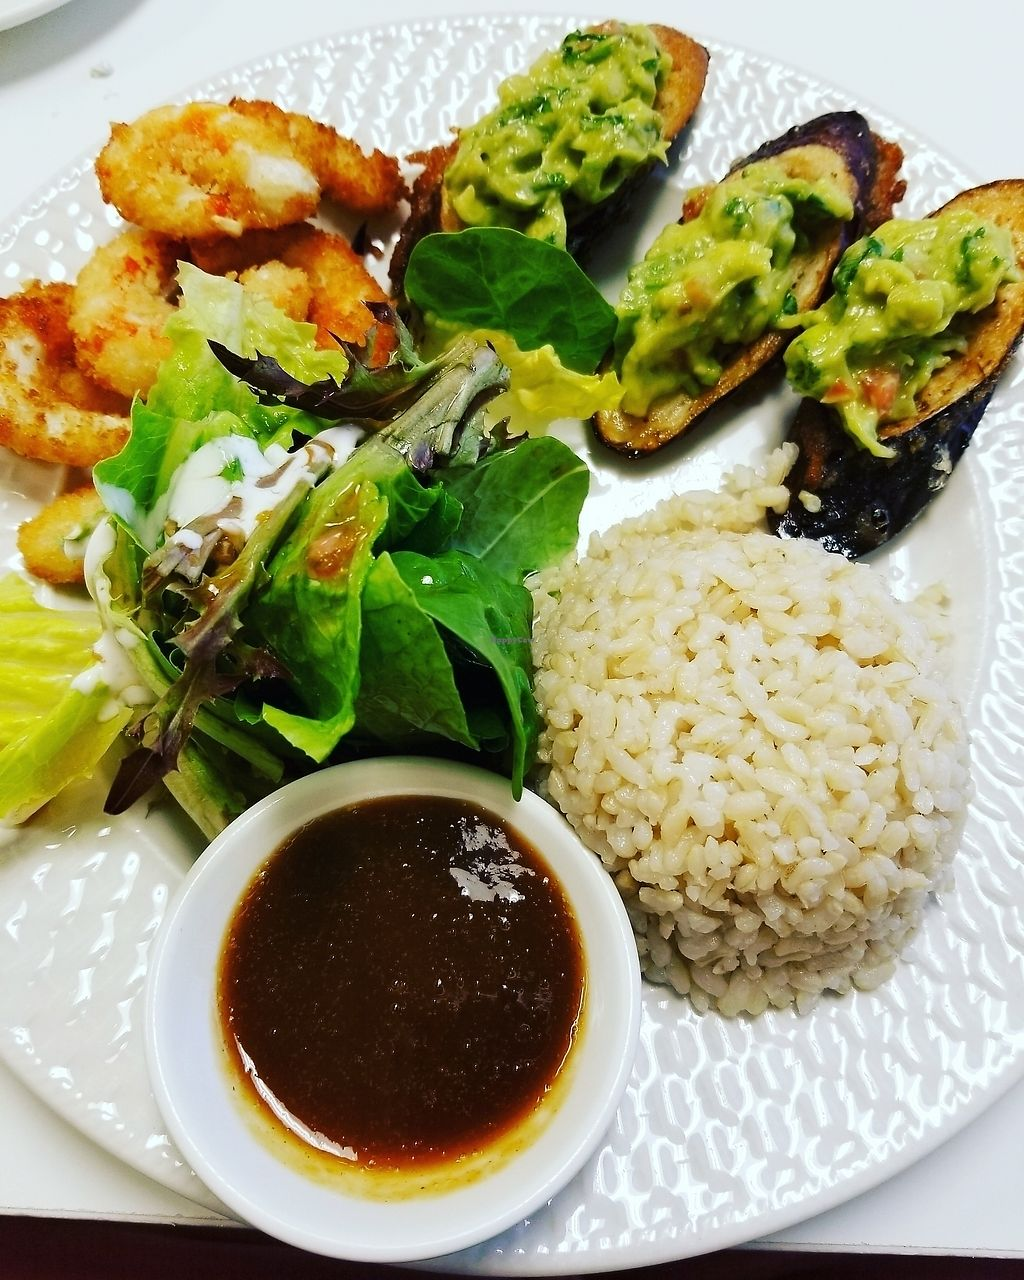 """Photo of Loving Hut - Cape Coral  by <a href=""""/members/profile/alij1126"""">alij1126</a> <br/>sea crescents, brown rice, eggplant with guac and a salad.  <br/> July 13, 2017  - <a href='/contact/abuse/image/19904/279690'>Report</a>"""